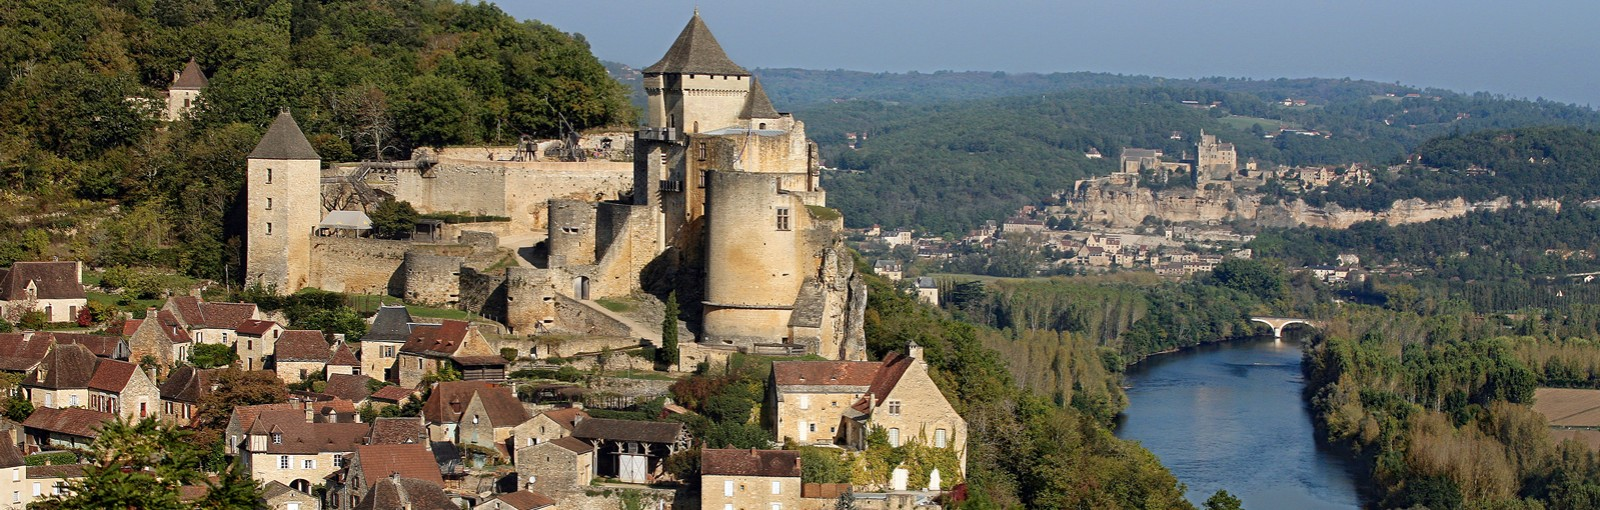 Tours Private day tours from Sarlat - Dordoña y Burdeos - TOURS REGIONALES